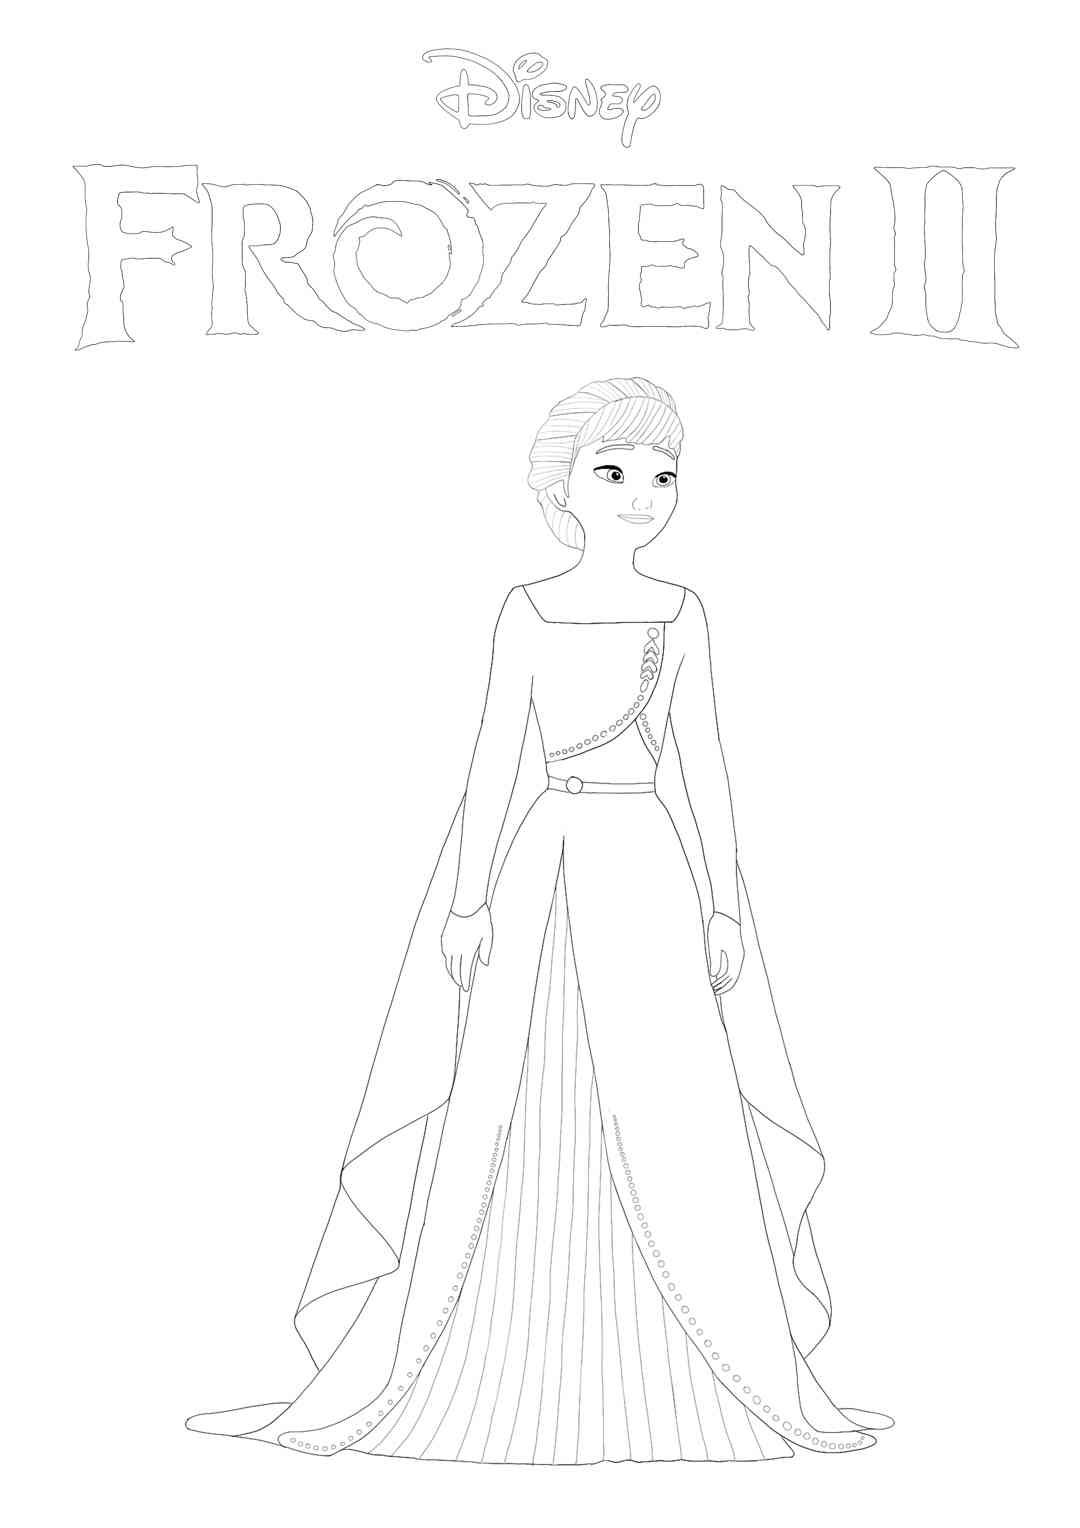 Frozen 2 Anna Coloring Page Rapunzel Coloring Pages Free Printable Coloring Sheets Elsa Coloring Pages